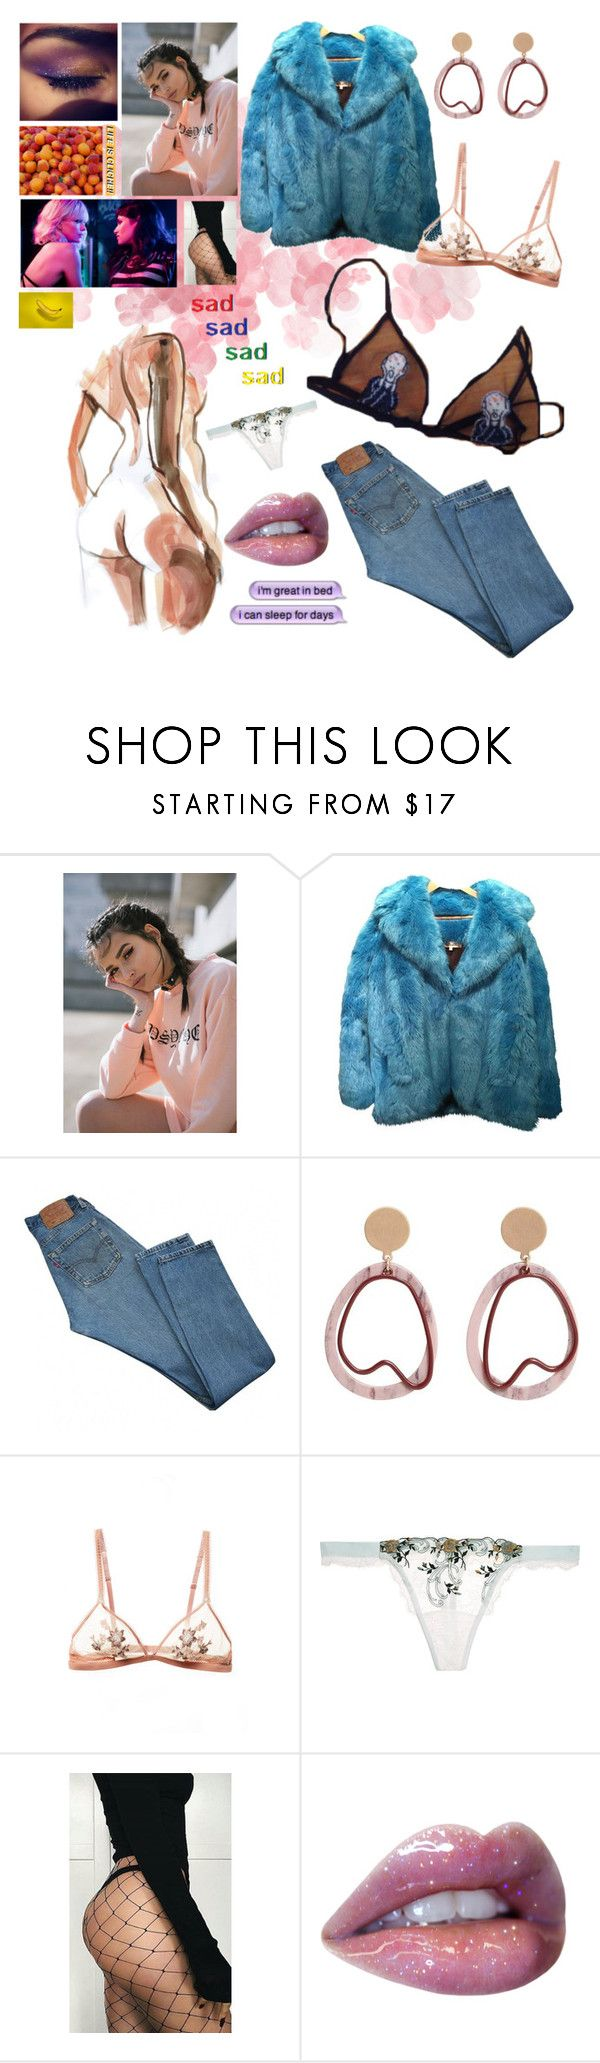 """""""Bitter fück-joji-in tongues"""" by yellowx ❤ liked on Polyvore featuring Diane Von Furstenberg, Levi's, MANGO, La Perla and Cats Got the Cream"""